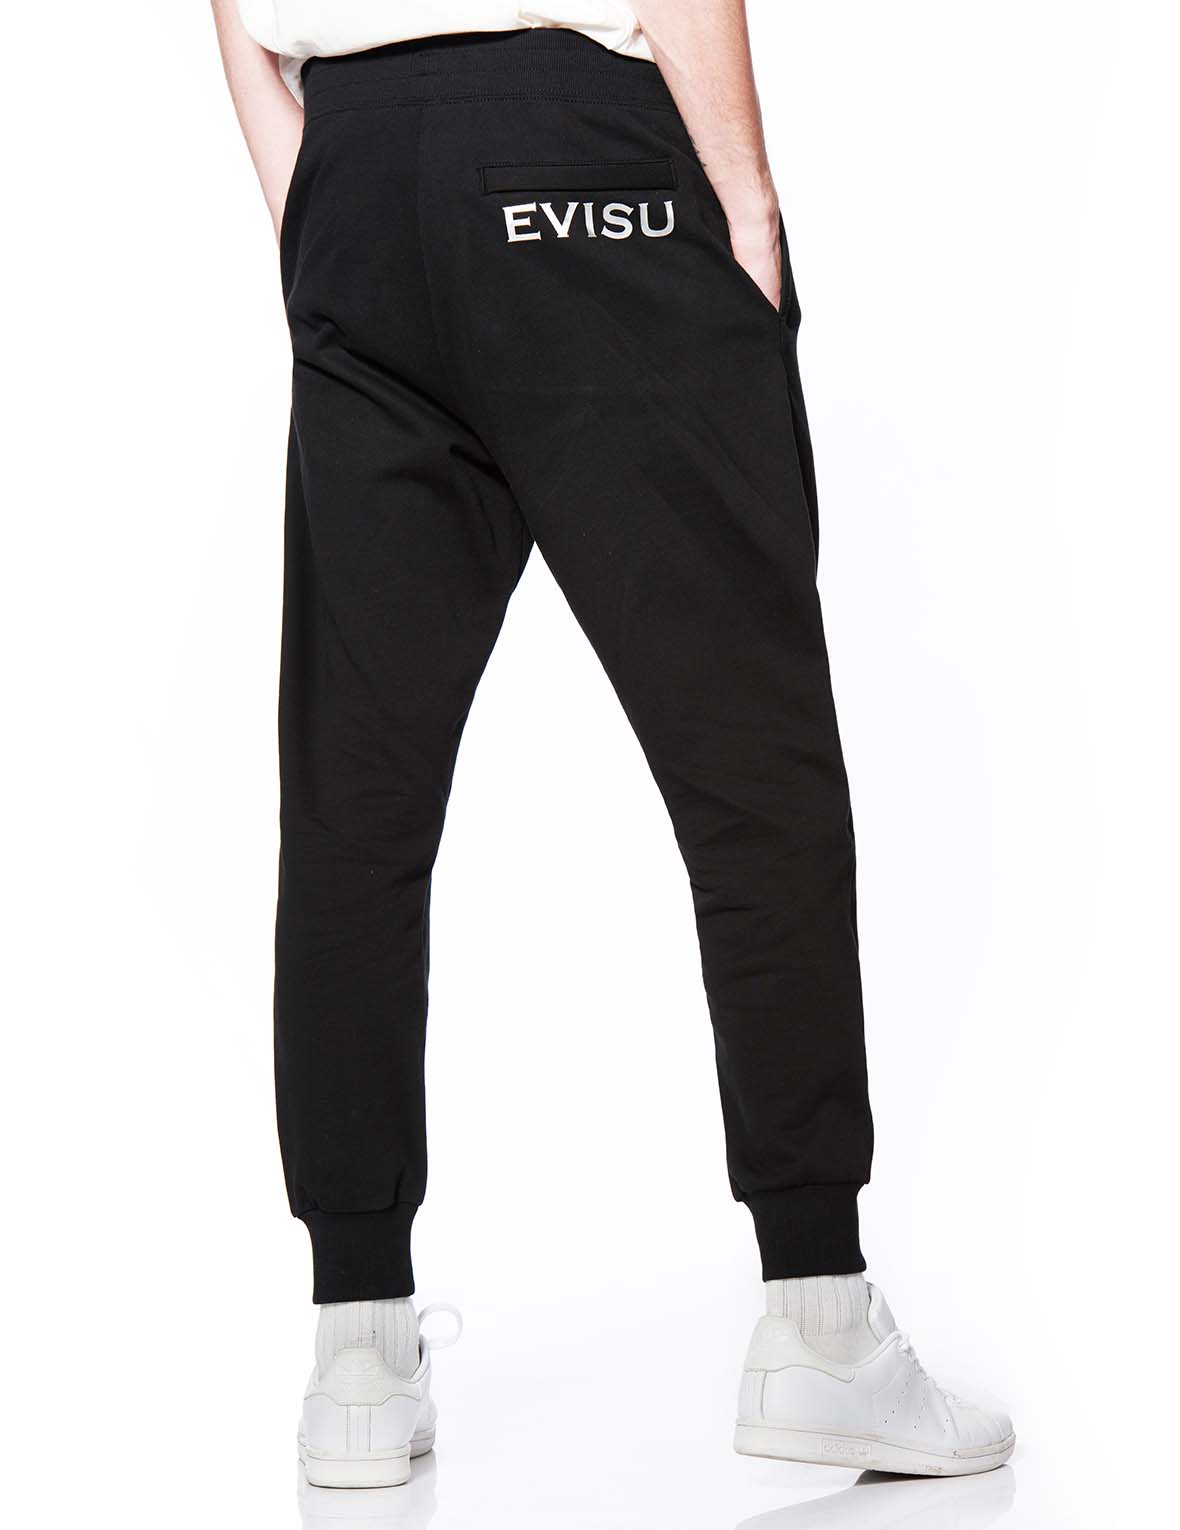 Gradient Seagull Unisex Sweatpants with Crystals by Preciosa